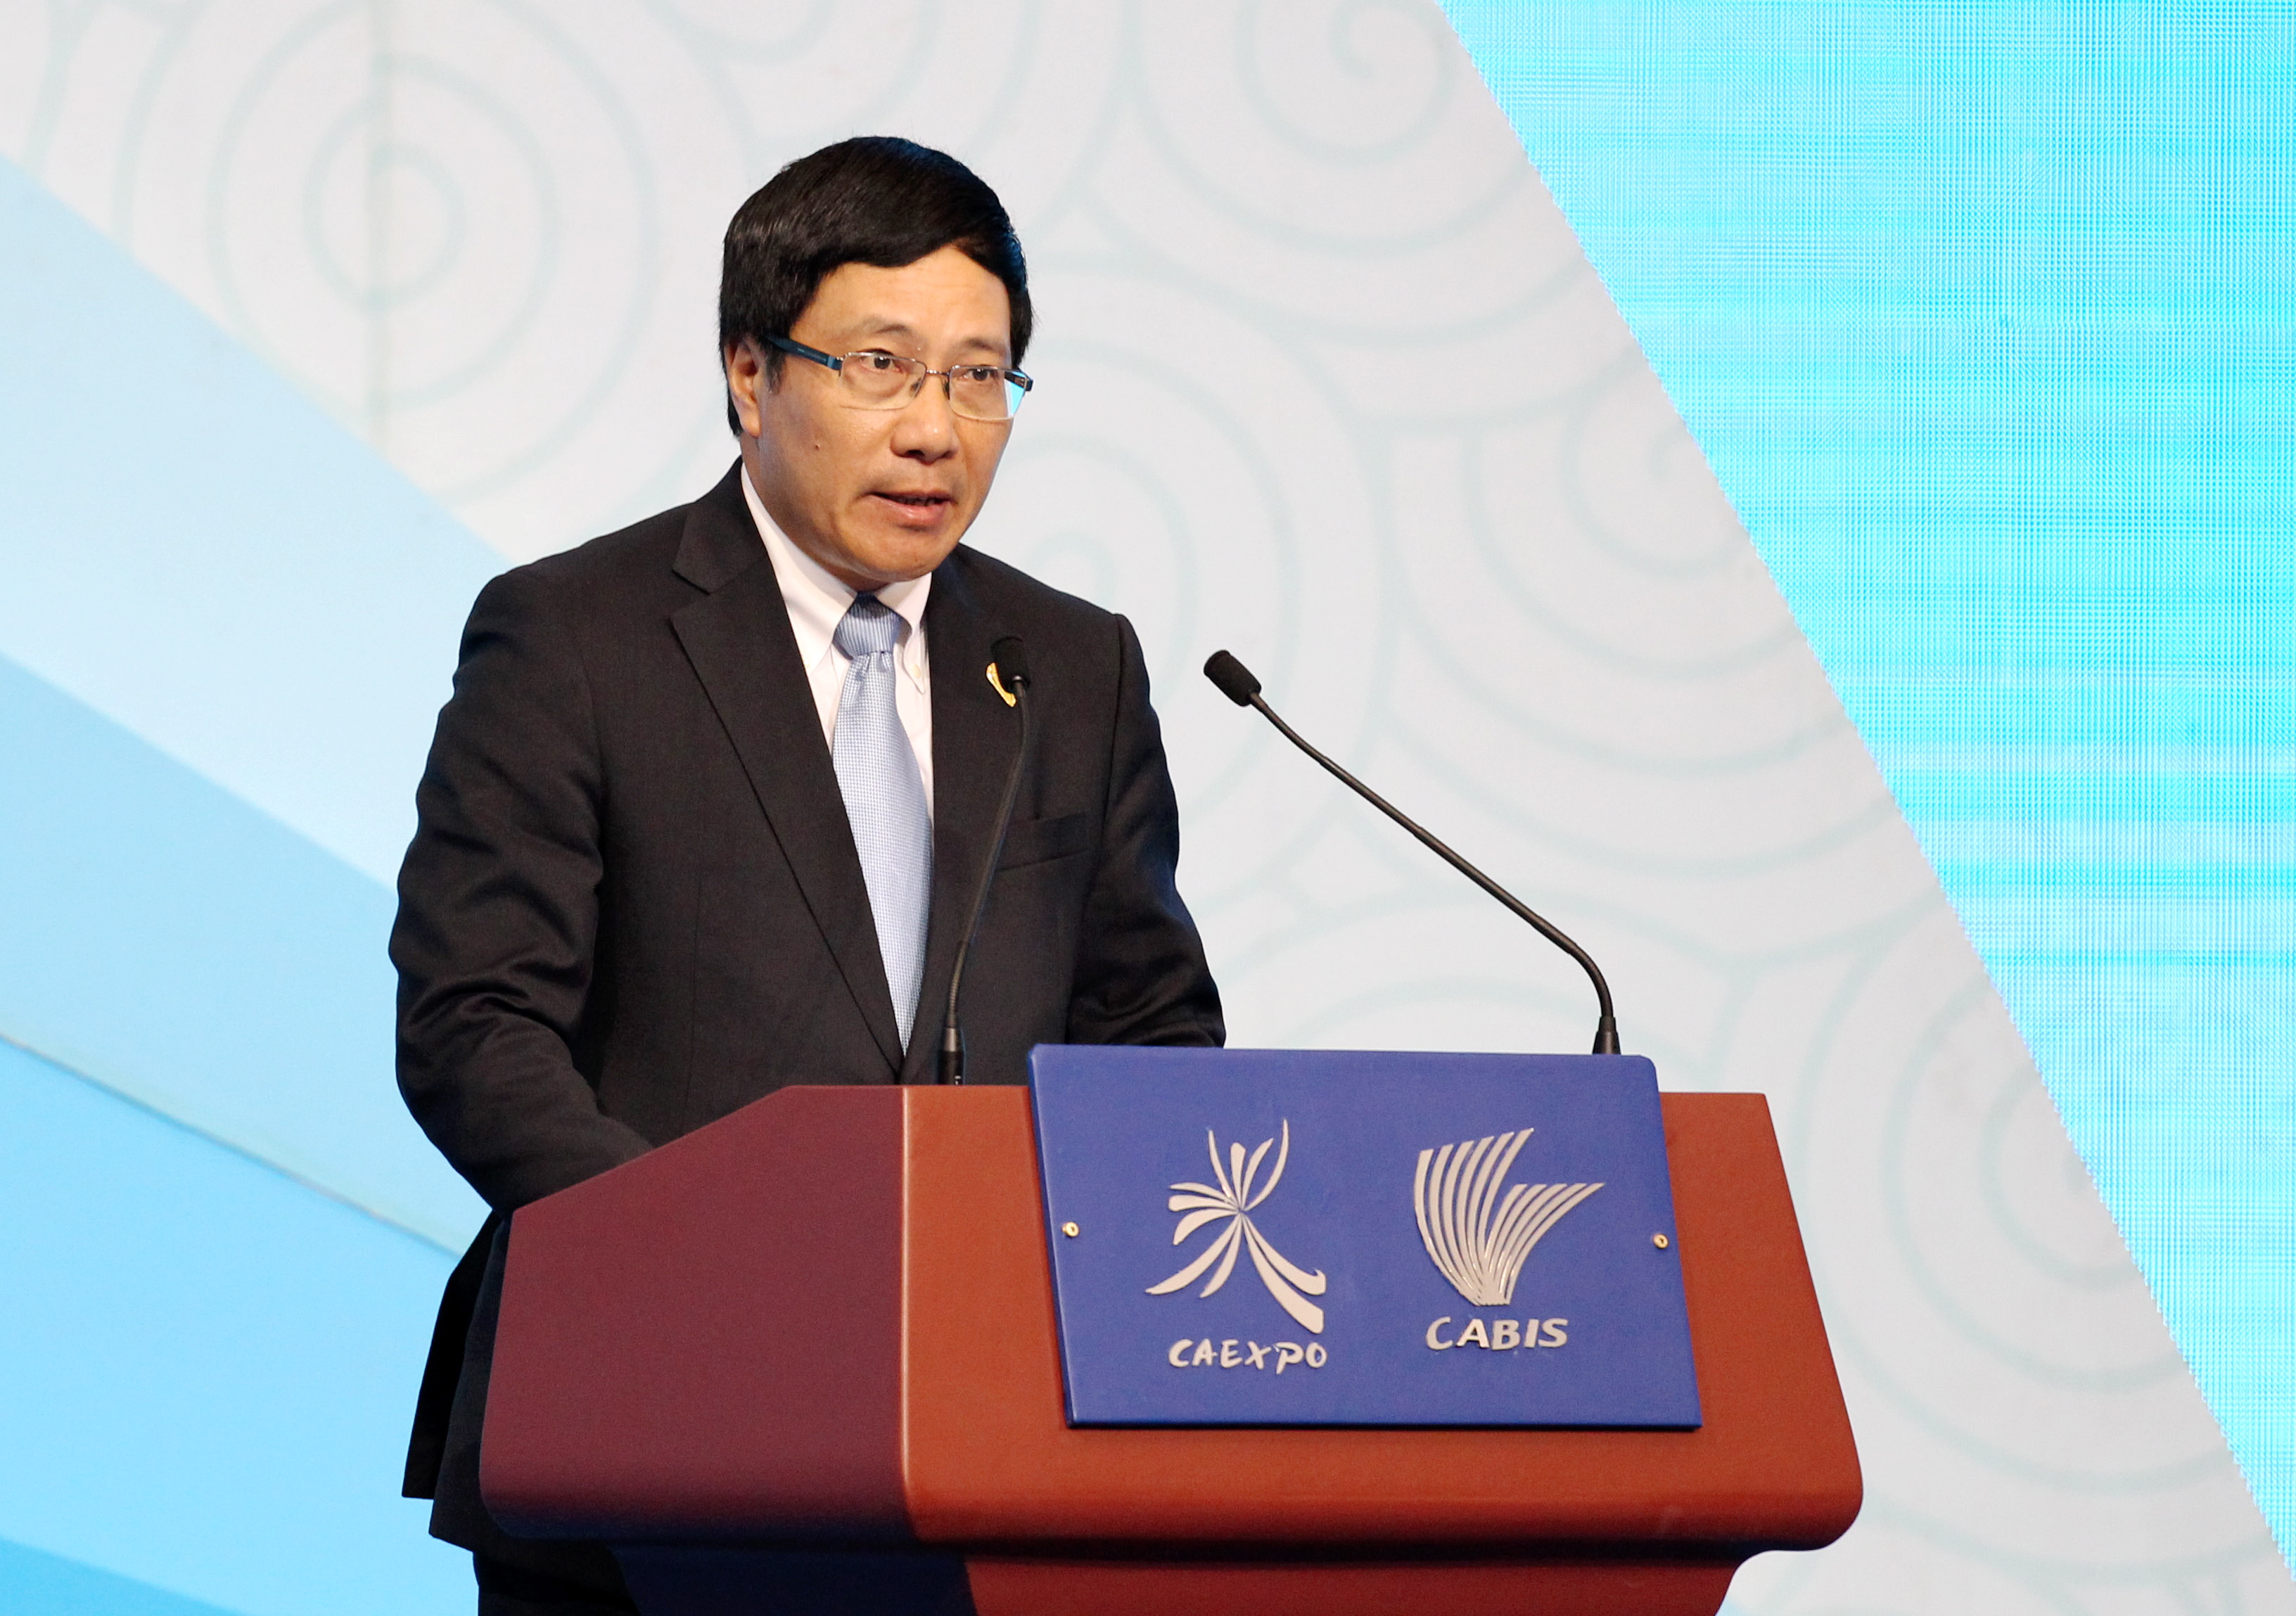 Vietnamese Deputy Prime Minister and Foreign Minister Pham Binh Minh delivers a speech at the opening ceremony of the 11th China-ASEAN Expo and the 11th China-ASEAN Business and Investment Summit in Nanning, China, on Sept.16, 2014